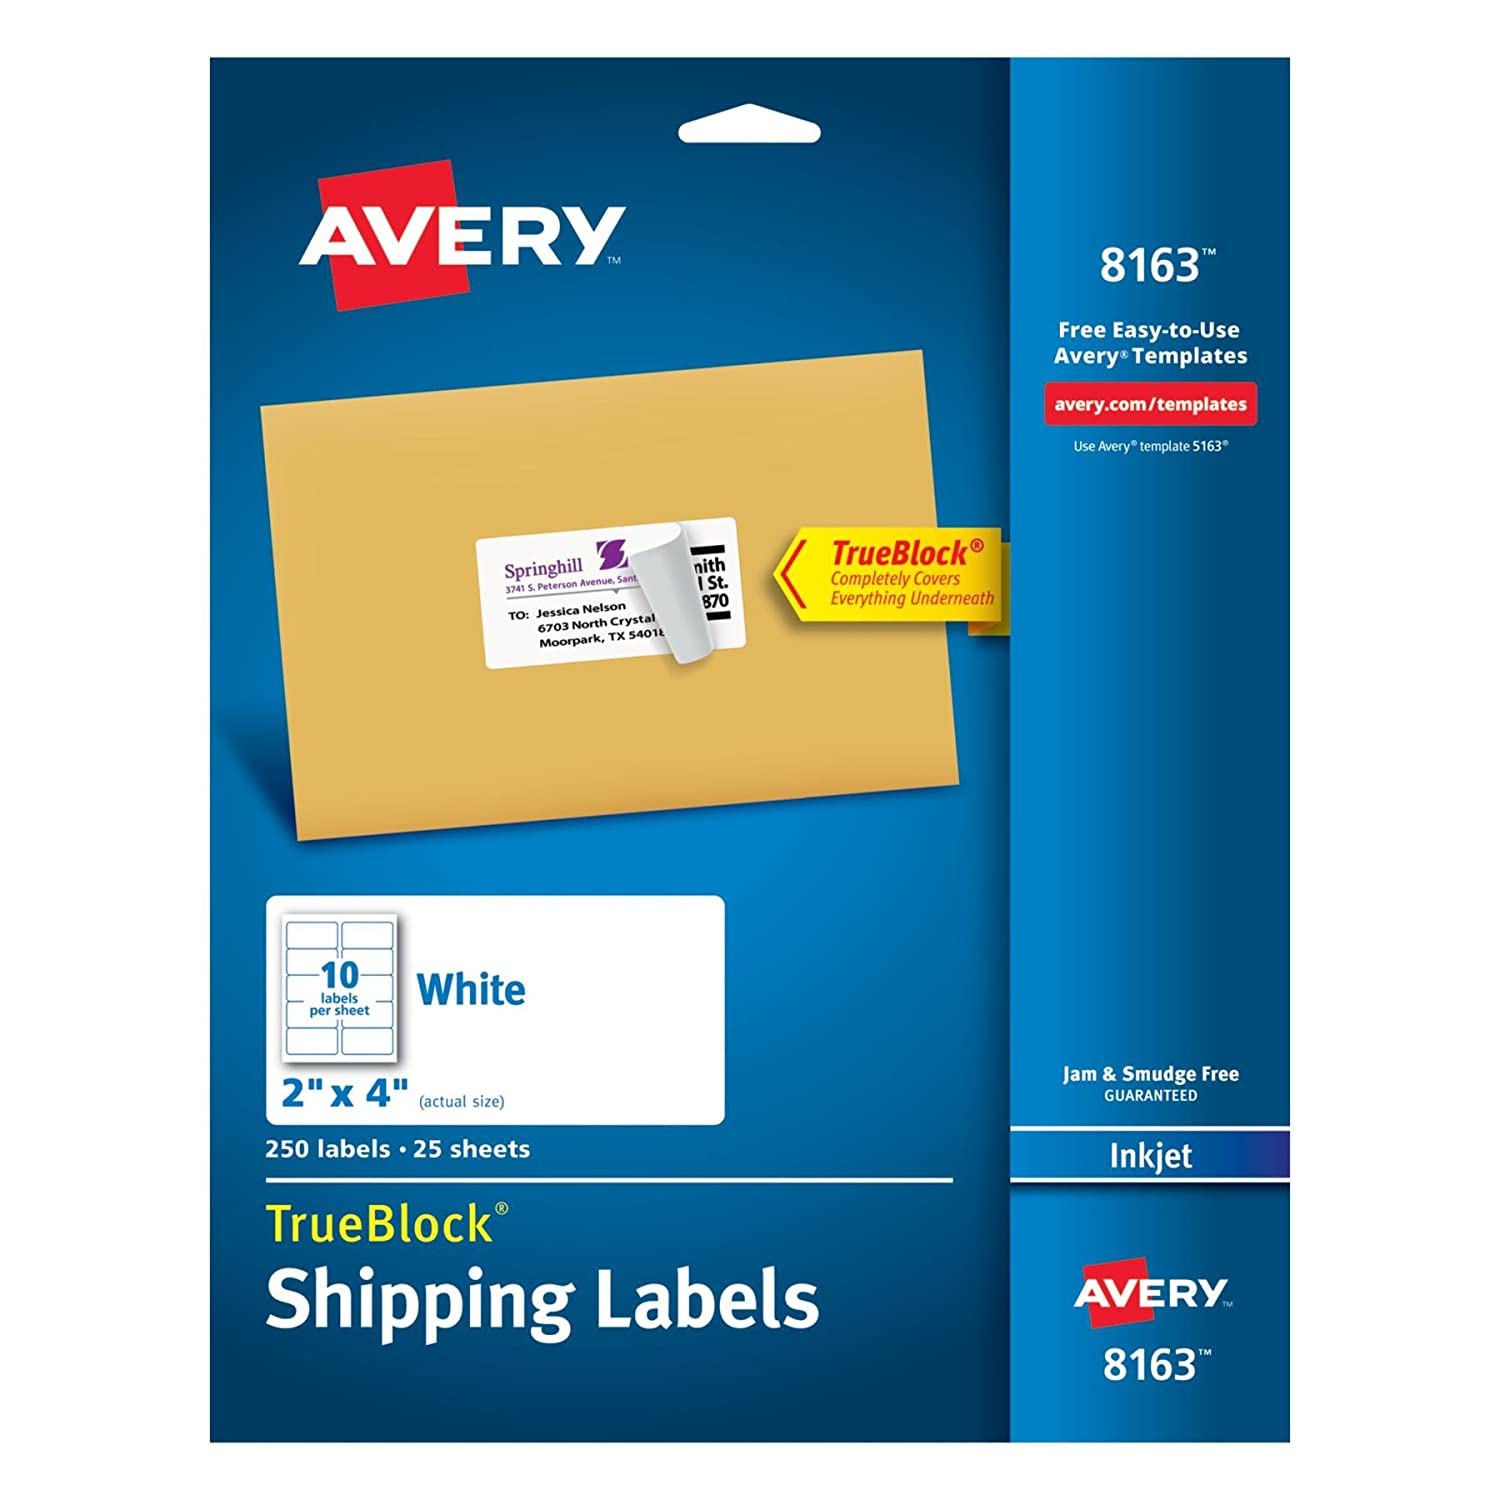 Amazon Avery Shipping Labels with TrueBlock Technology 2 x 4 – Large Mailing Labels